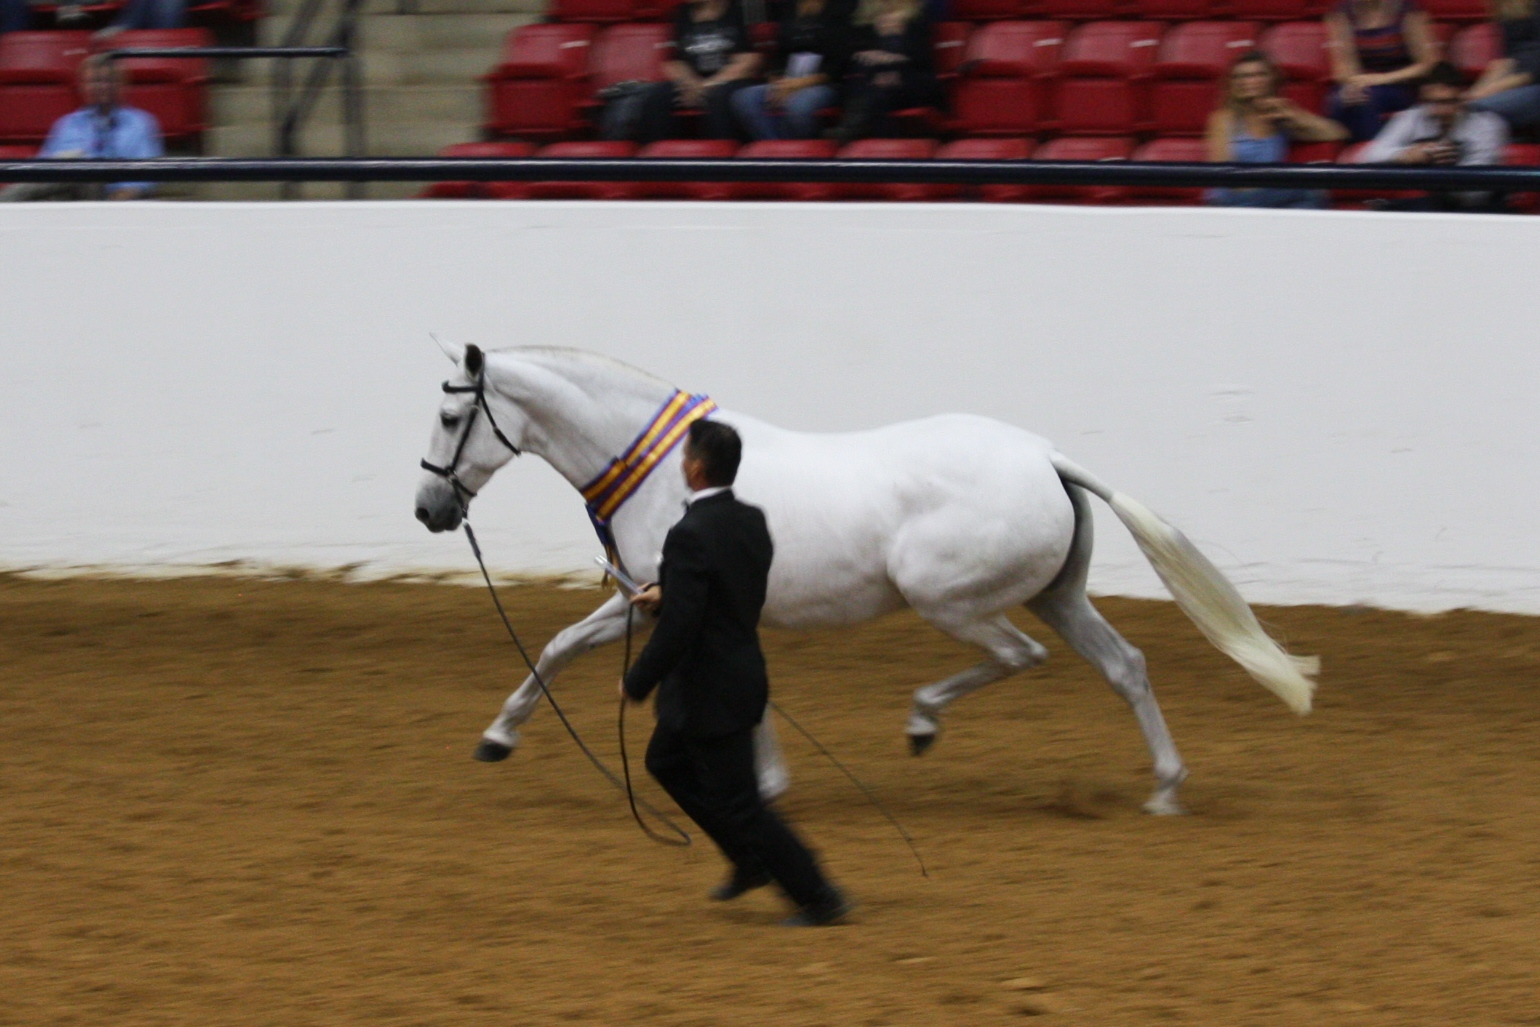 Fantasia Del C & Howard Peet accepting the 2012 Purebred Andalusian of the Year award. Photo: Sarah C. Shechner